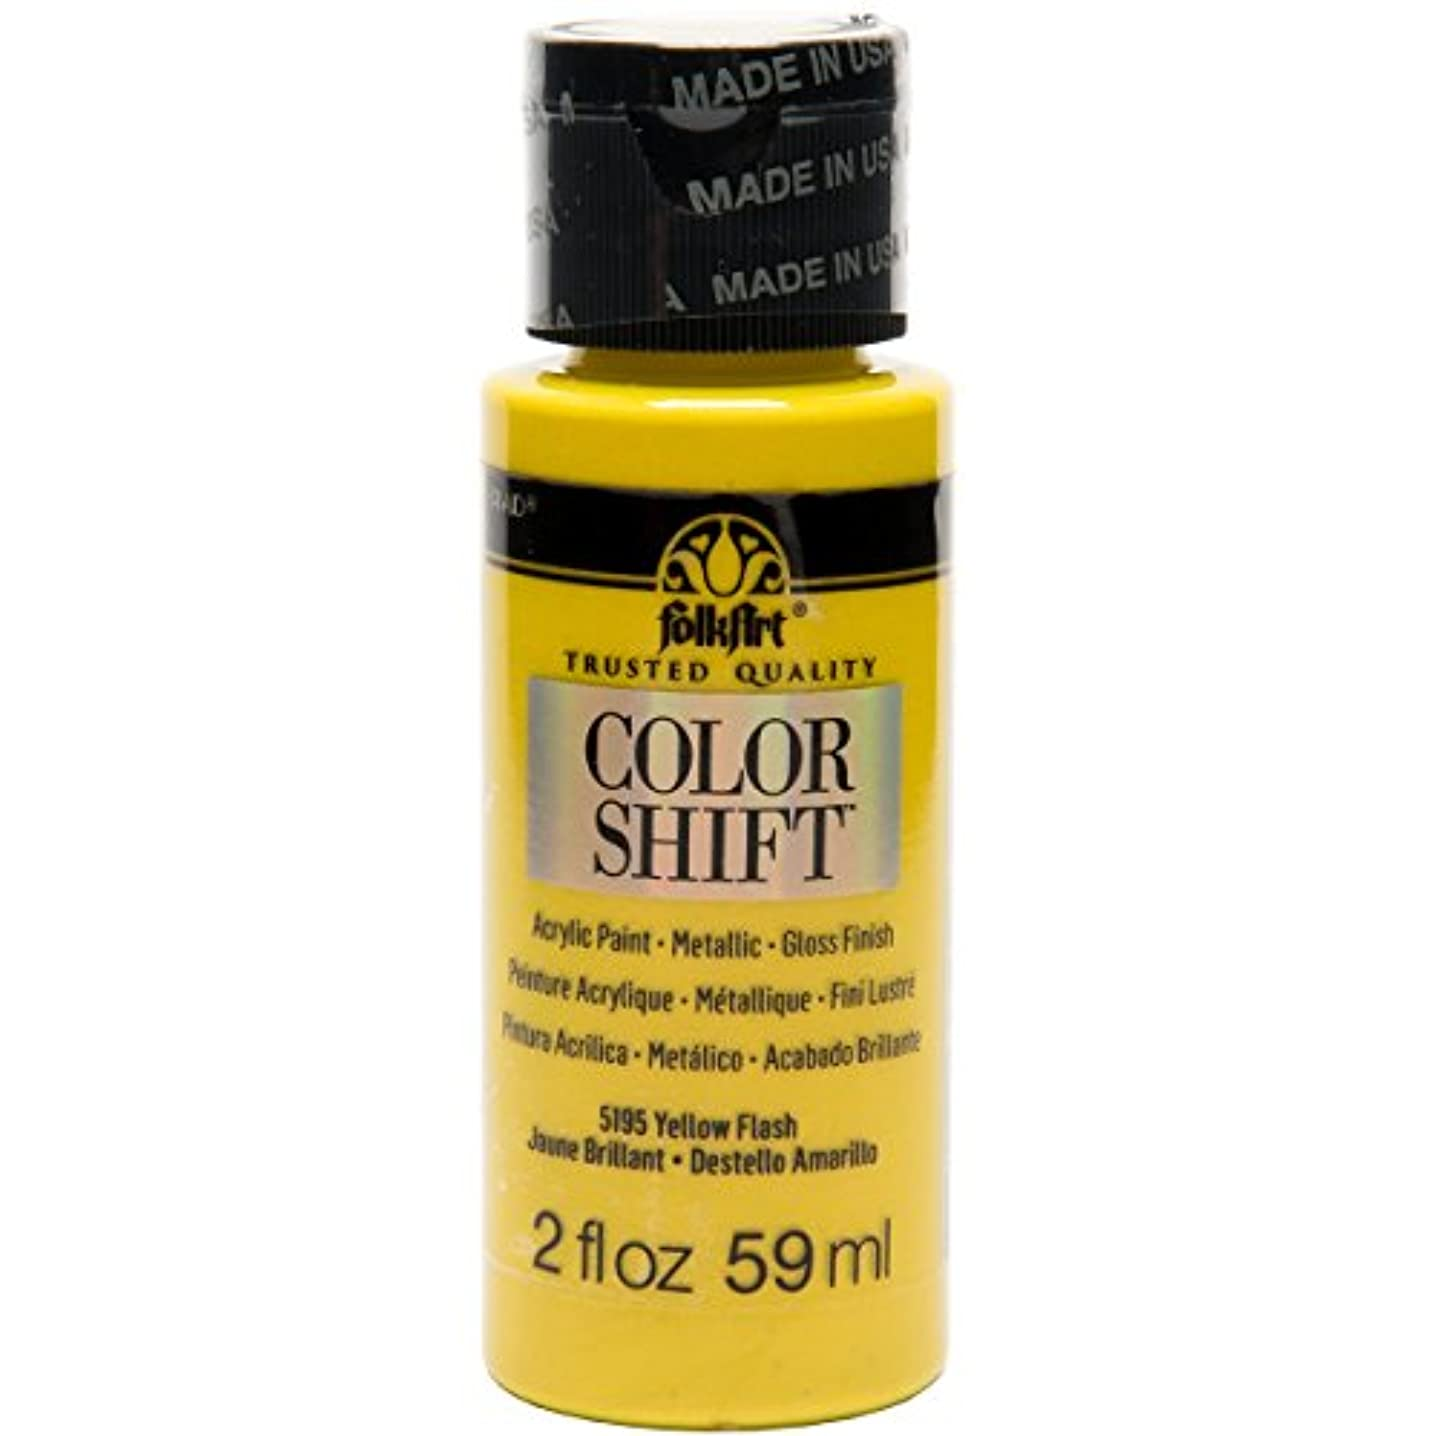 FolkArt Color Shift Acrylic Paint in Assorted Colors (2 ounce), 5195 Yellow Flash